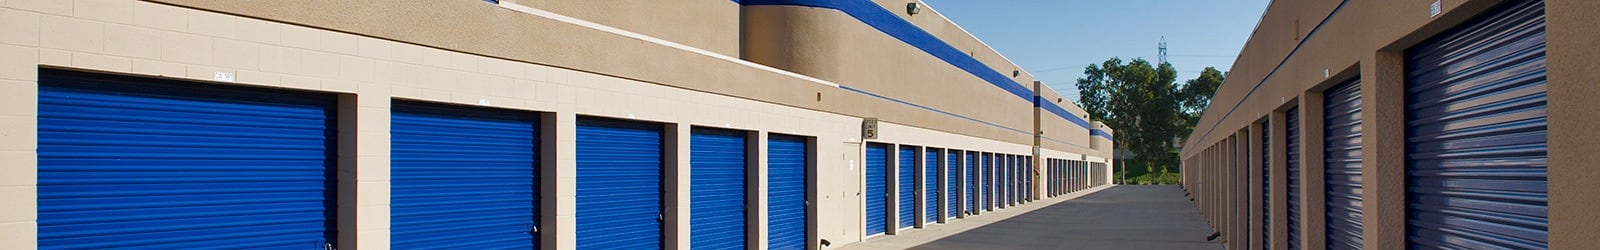 Contact a representative at Mira Mesa Self Storage